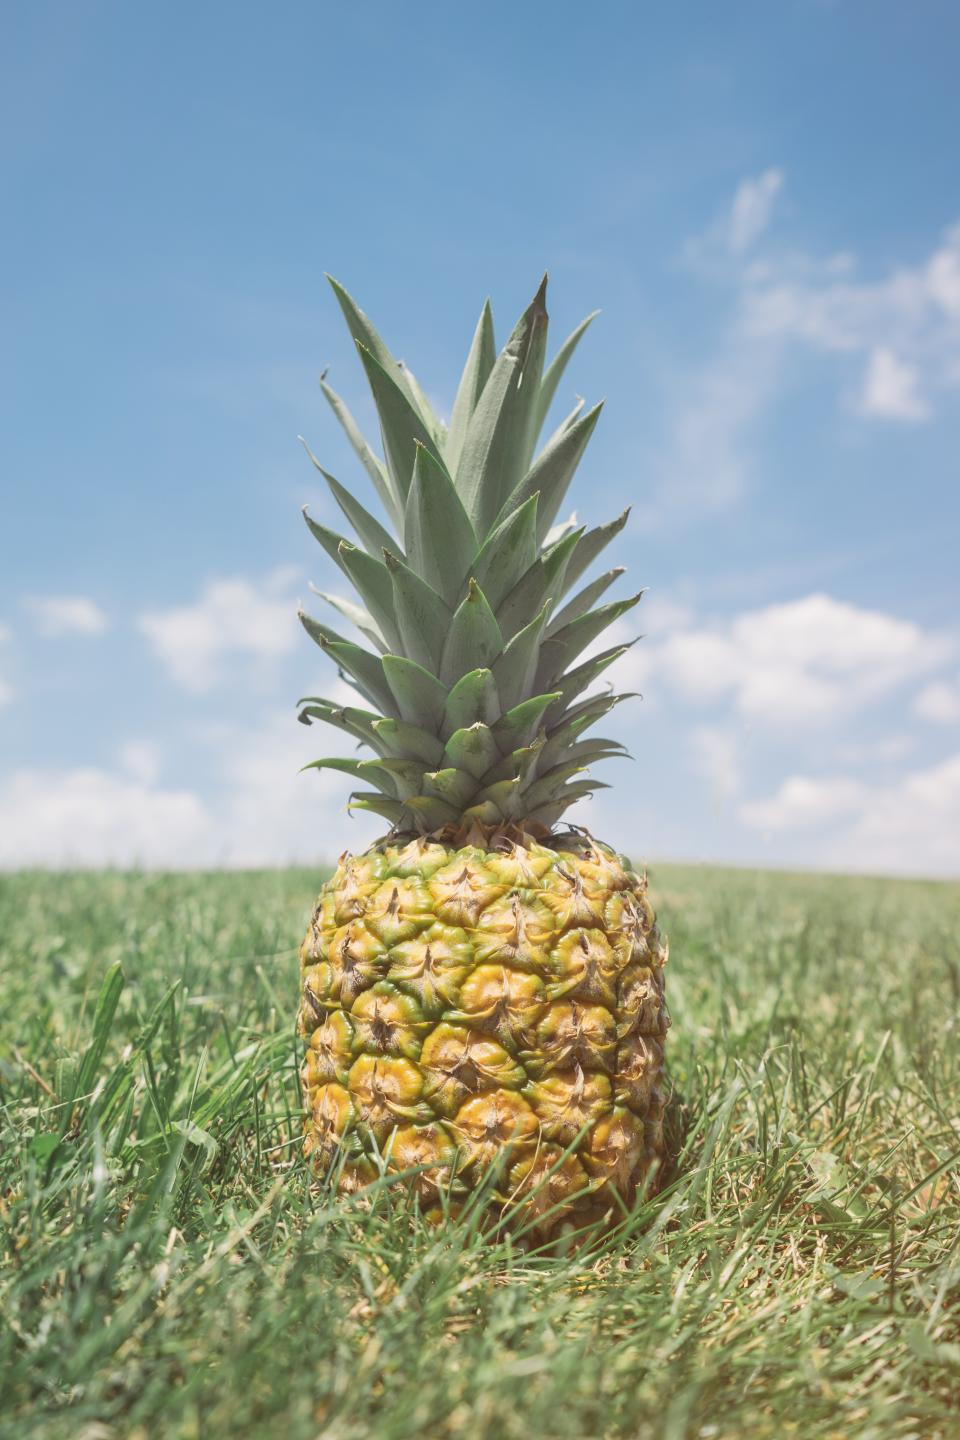 pineapple dessert appetizer fruit juice crop nature grass clouds sky